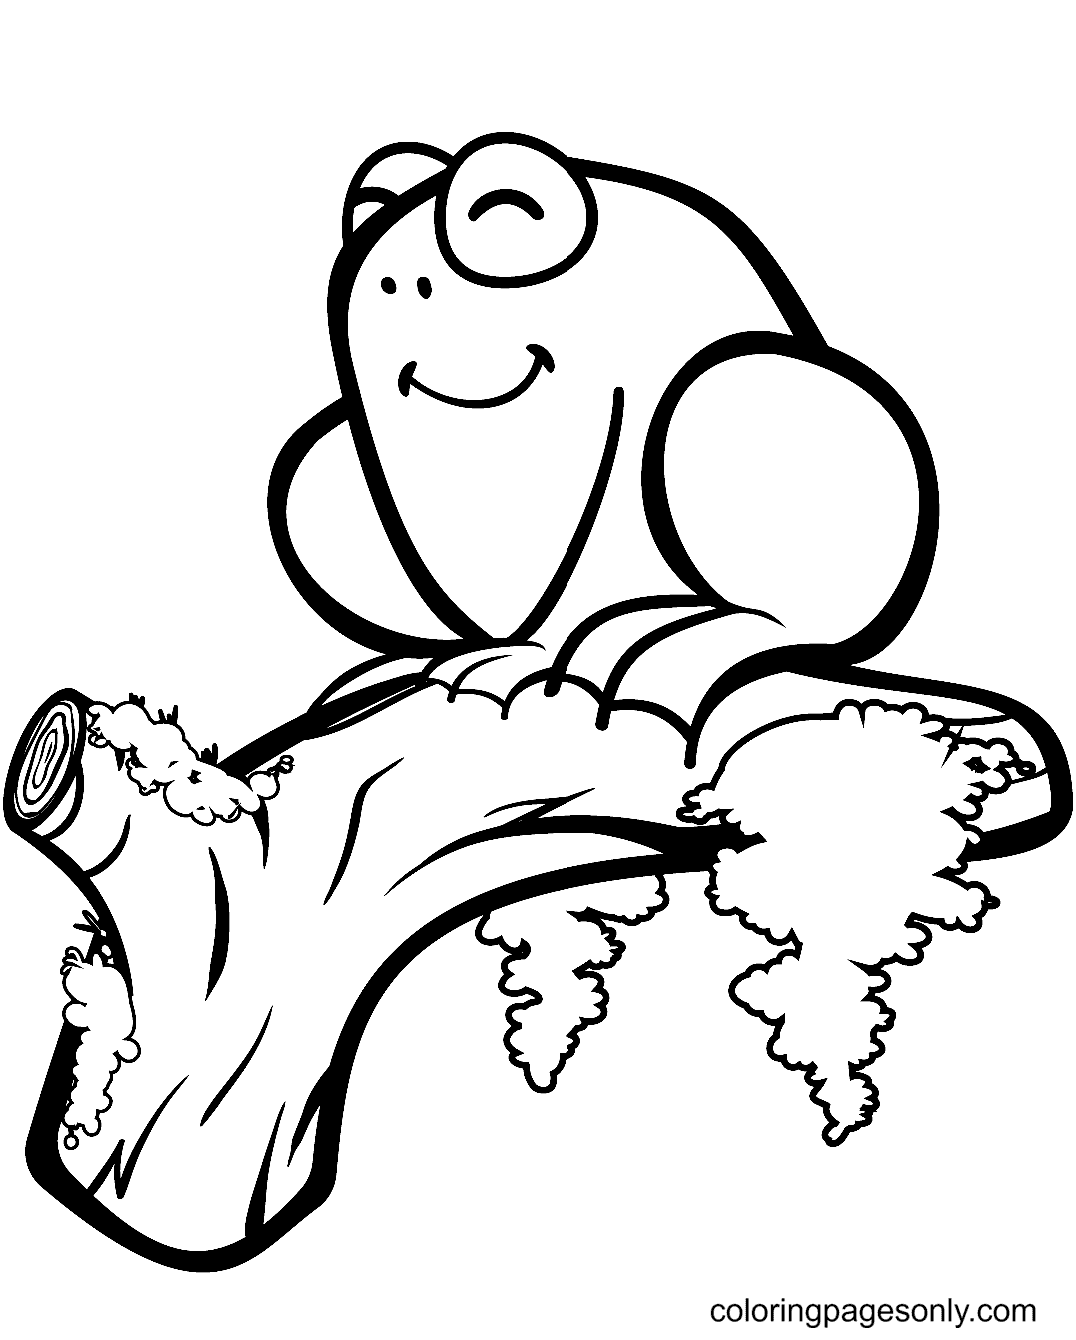 Cute Frog on a Branch Coloring Page